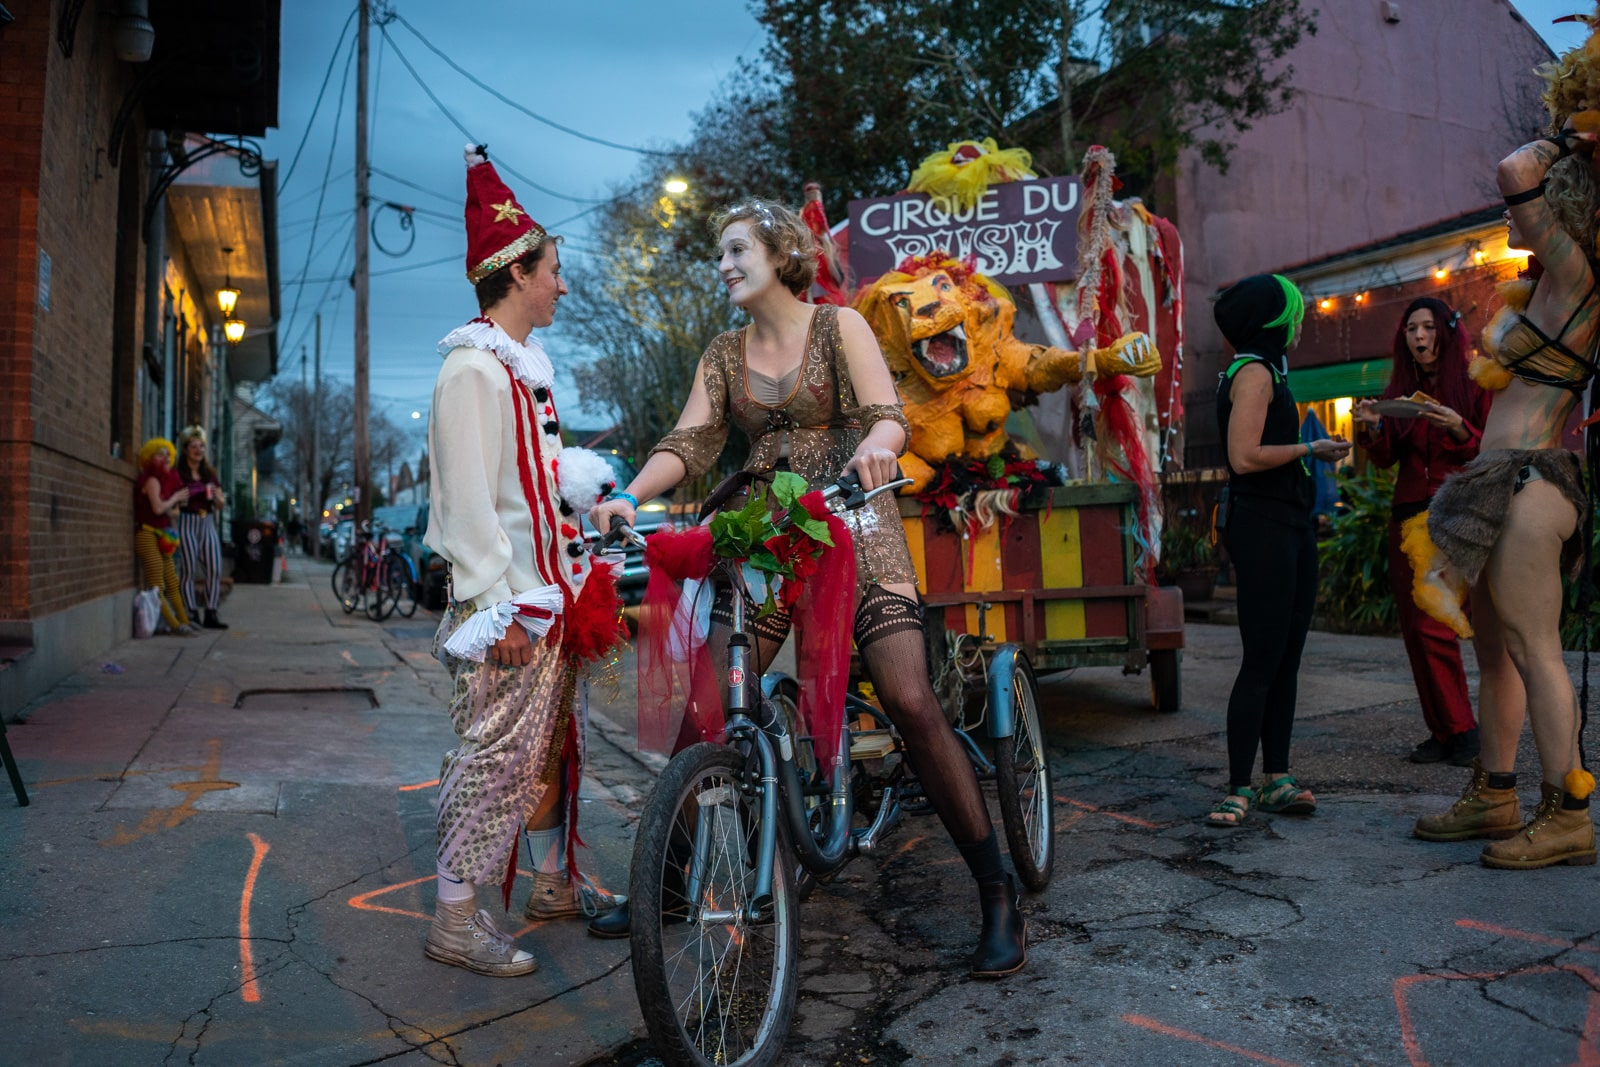 Paraders in circus costumes with a float during Mardi Gras in New Orleans